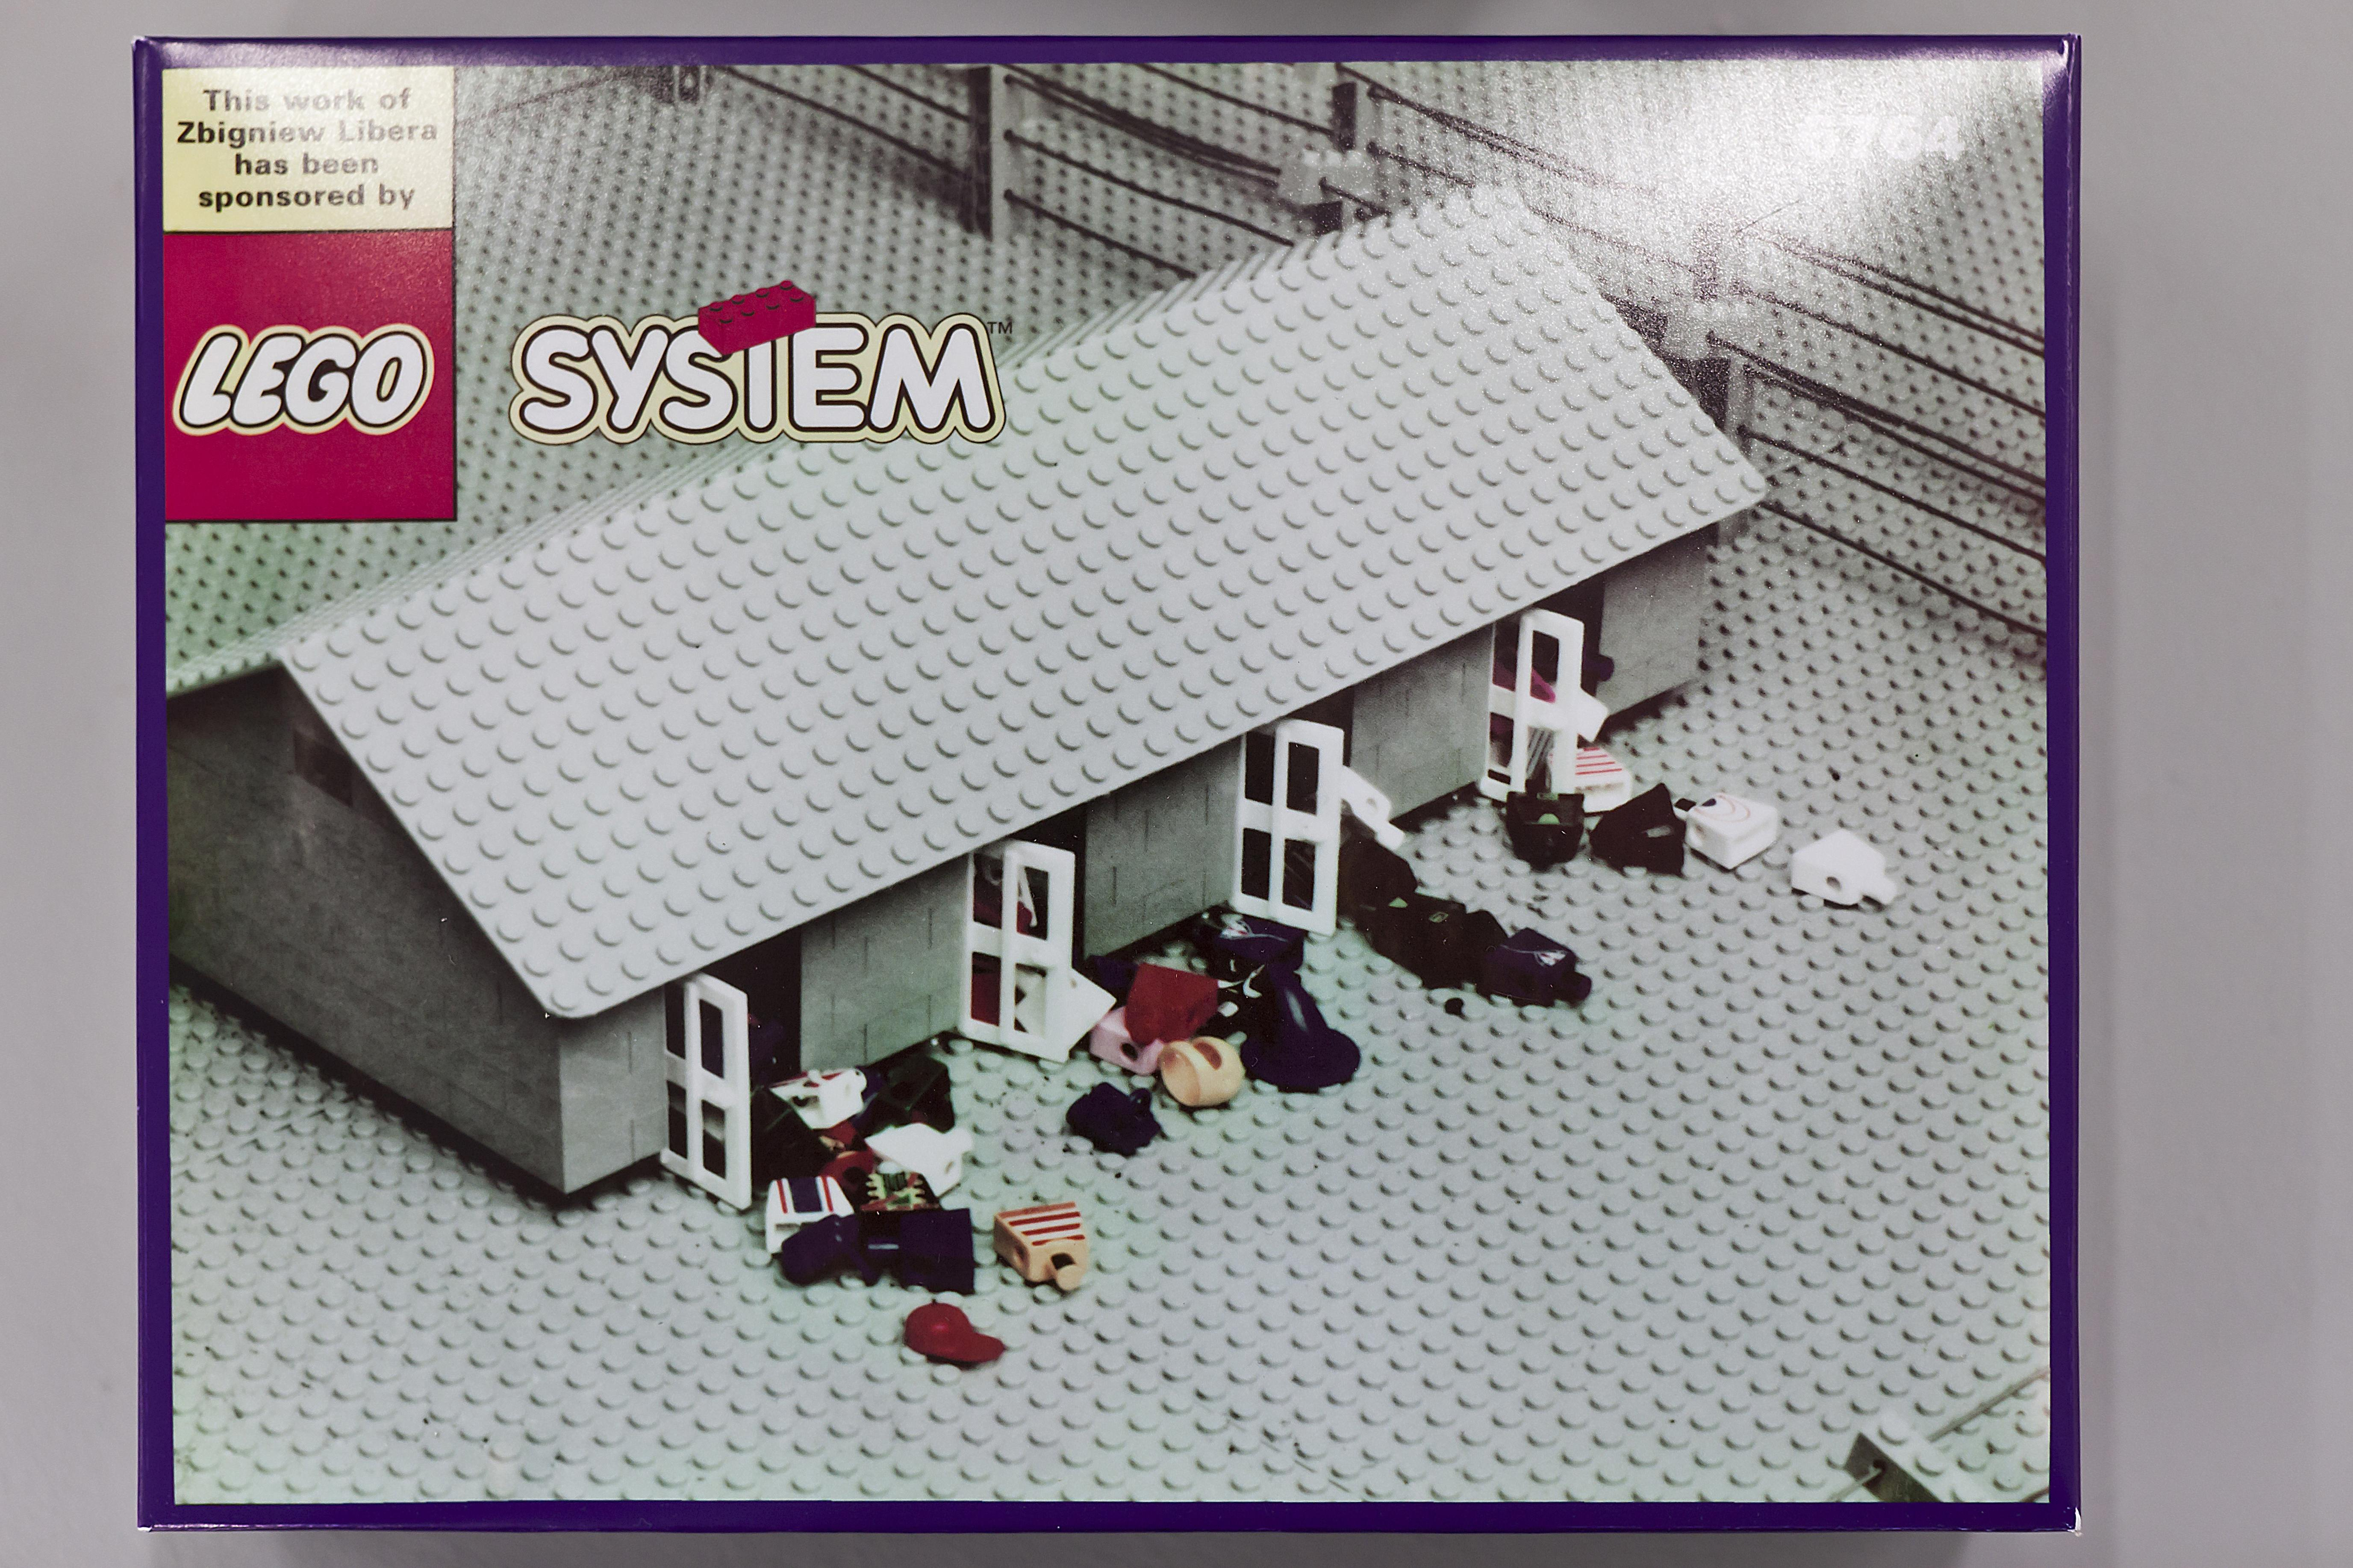 Kitchen Storage Idea Inside Zbigniew Libera S Controversial Lego Concentration Camp